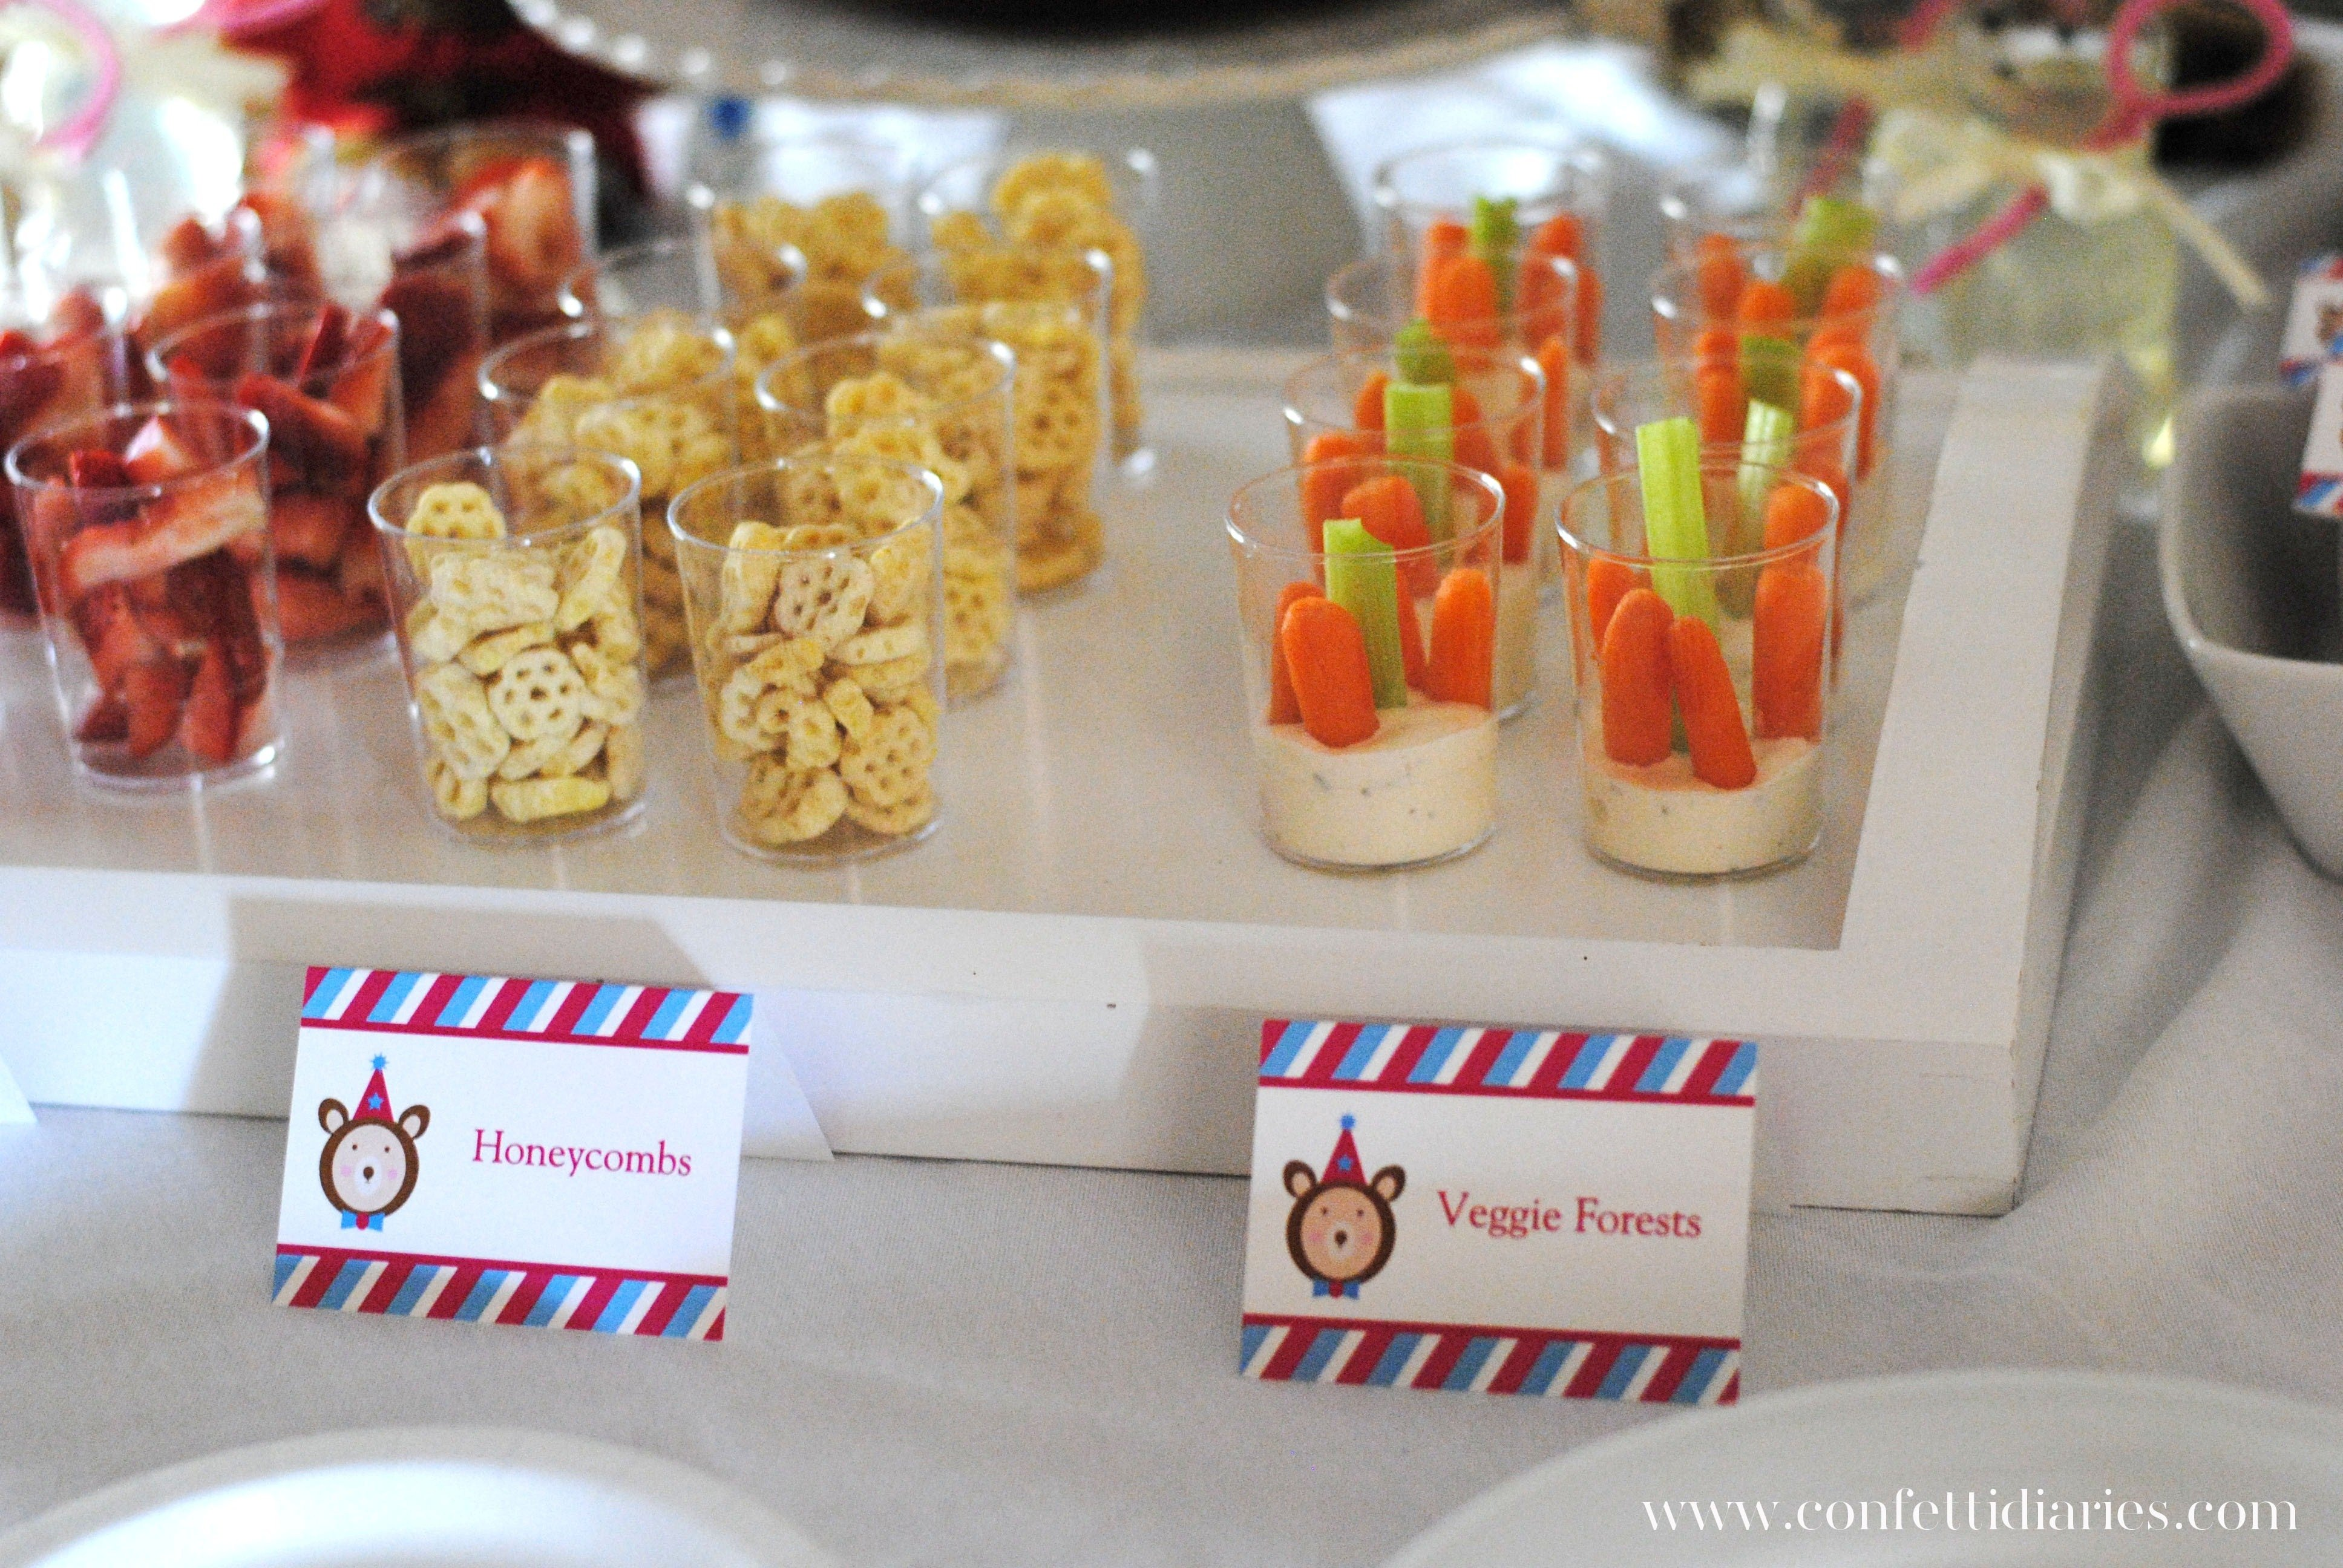 10 Elegant Party Food Ideas For Adults party food ideas for adults finger food nice decoration 3 2020